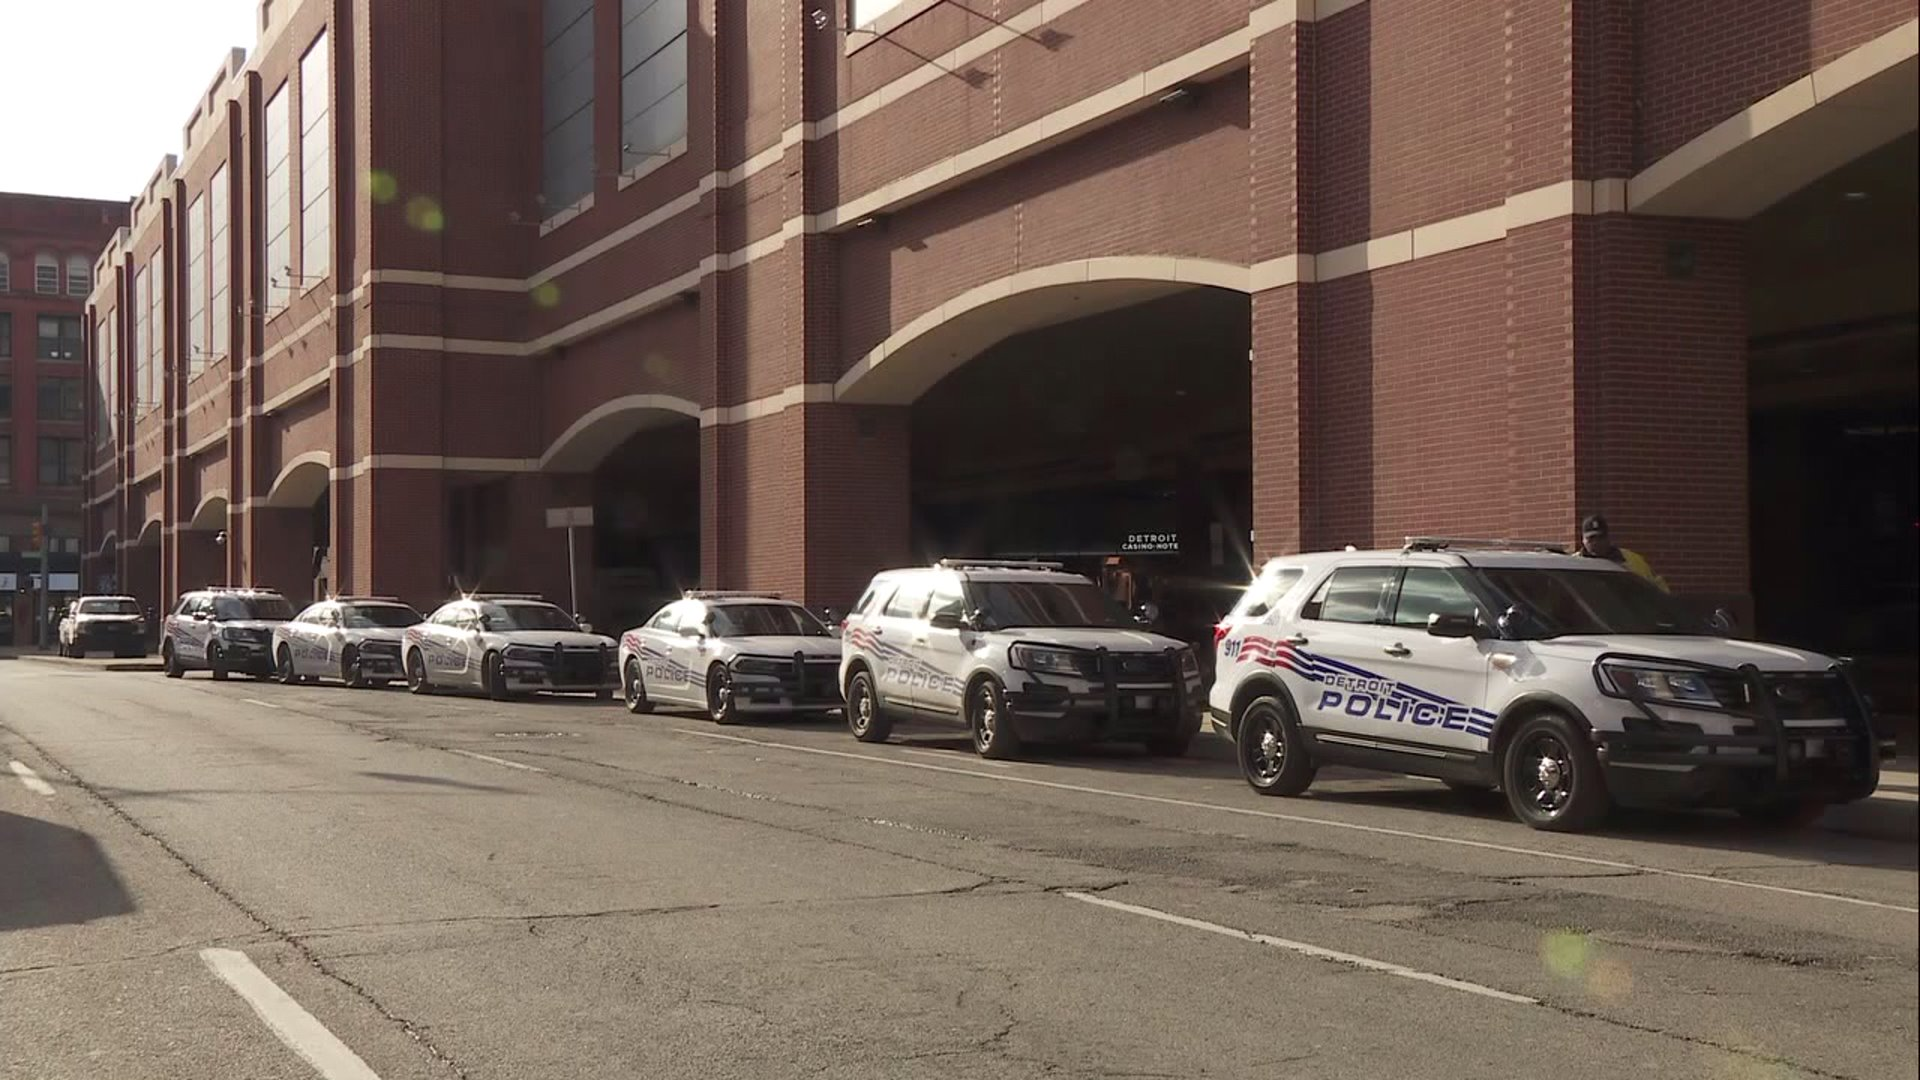 Police cars outside the Greektown Casino.